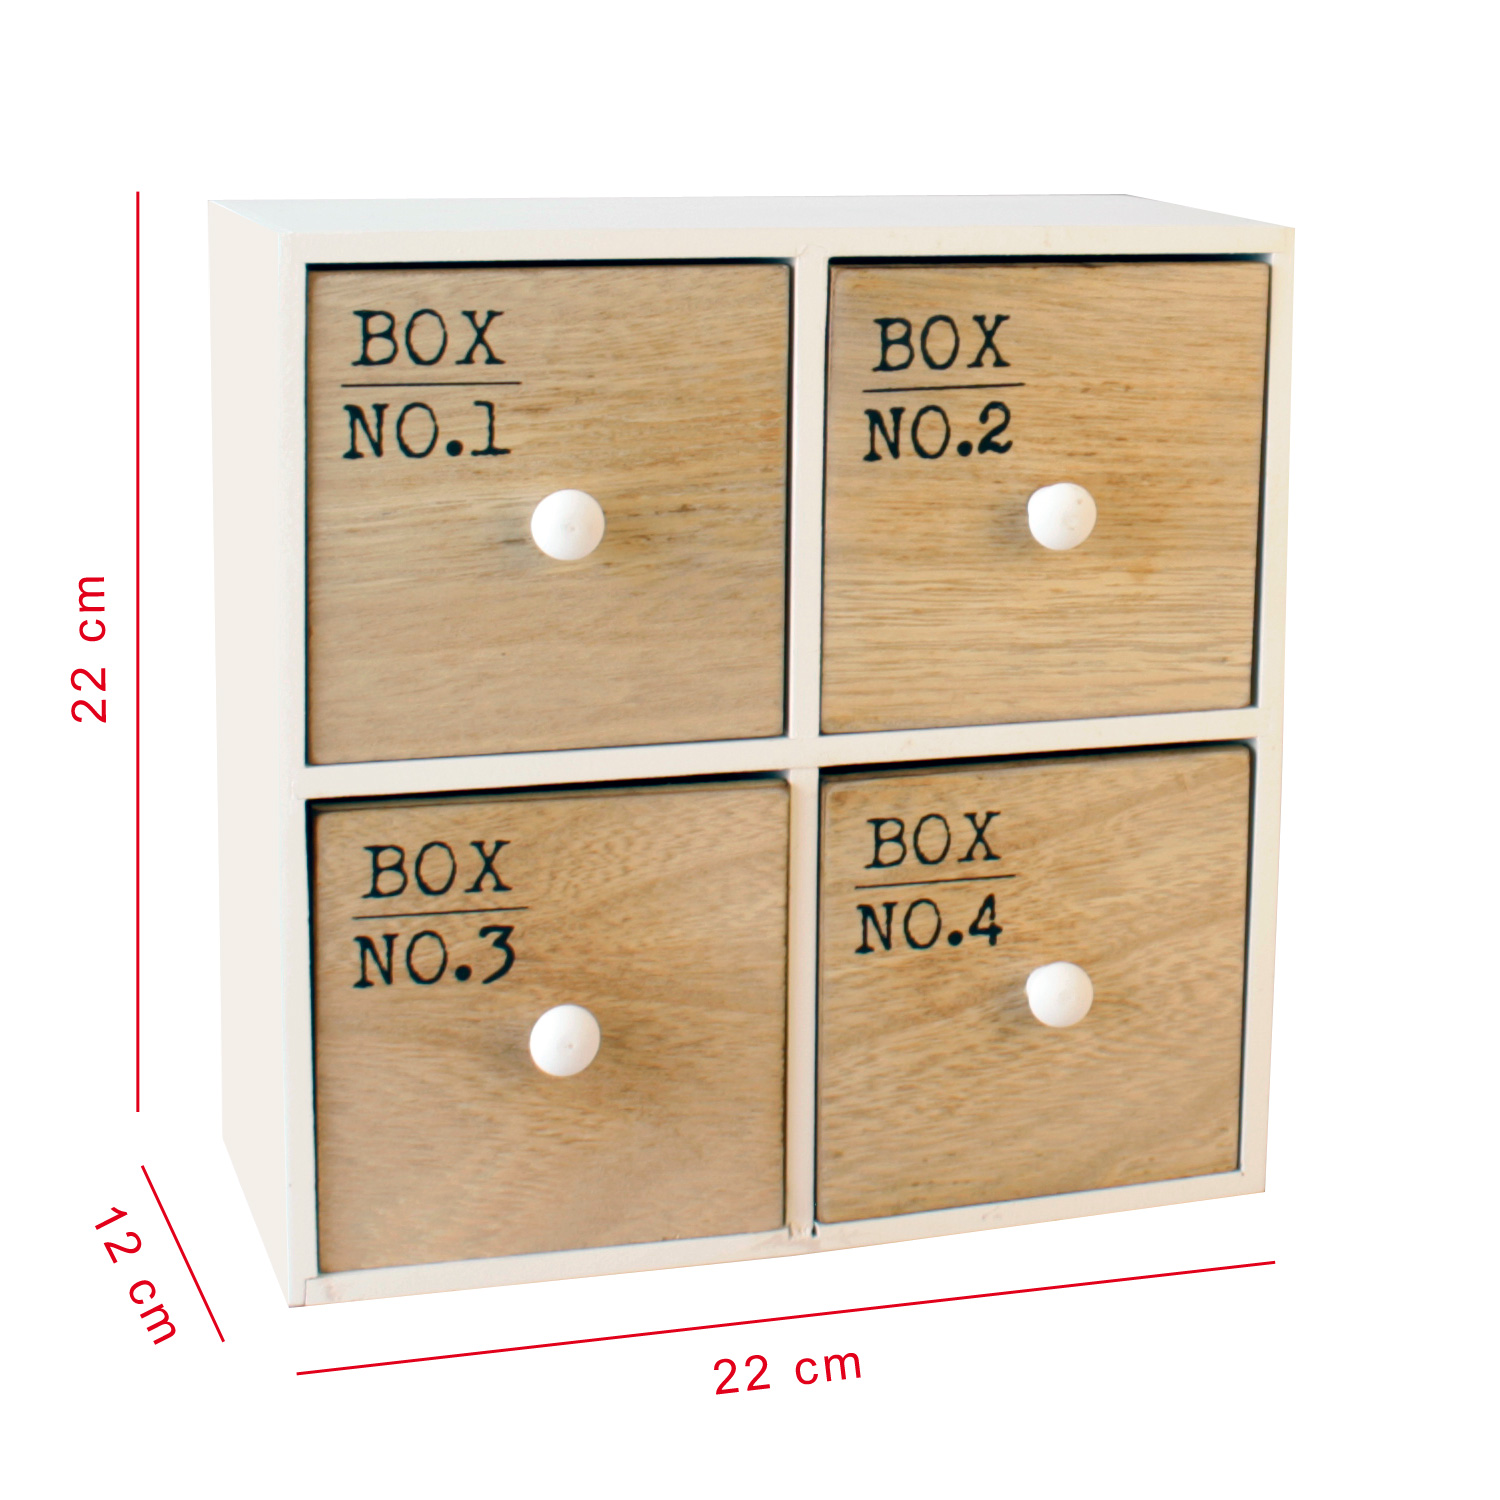 box schubladenbox schubladen holzbox sortierbox. Black Bedroom Furniture Sets. Home Design Ideas